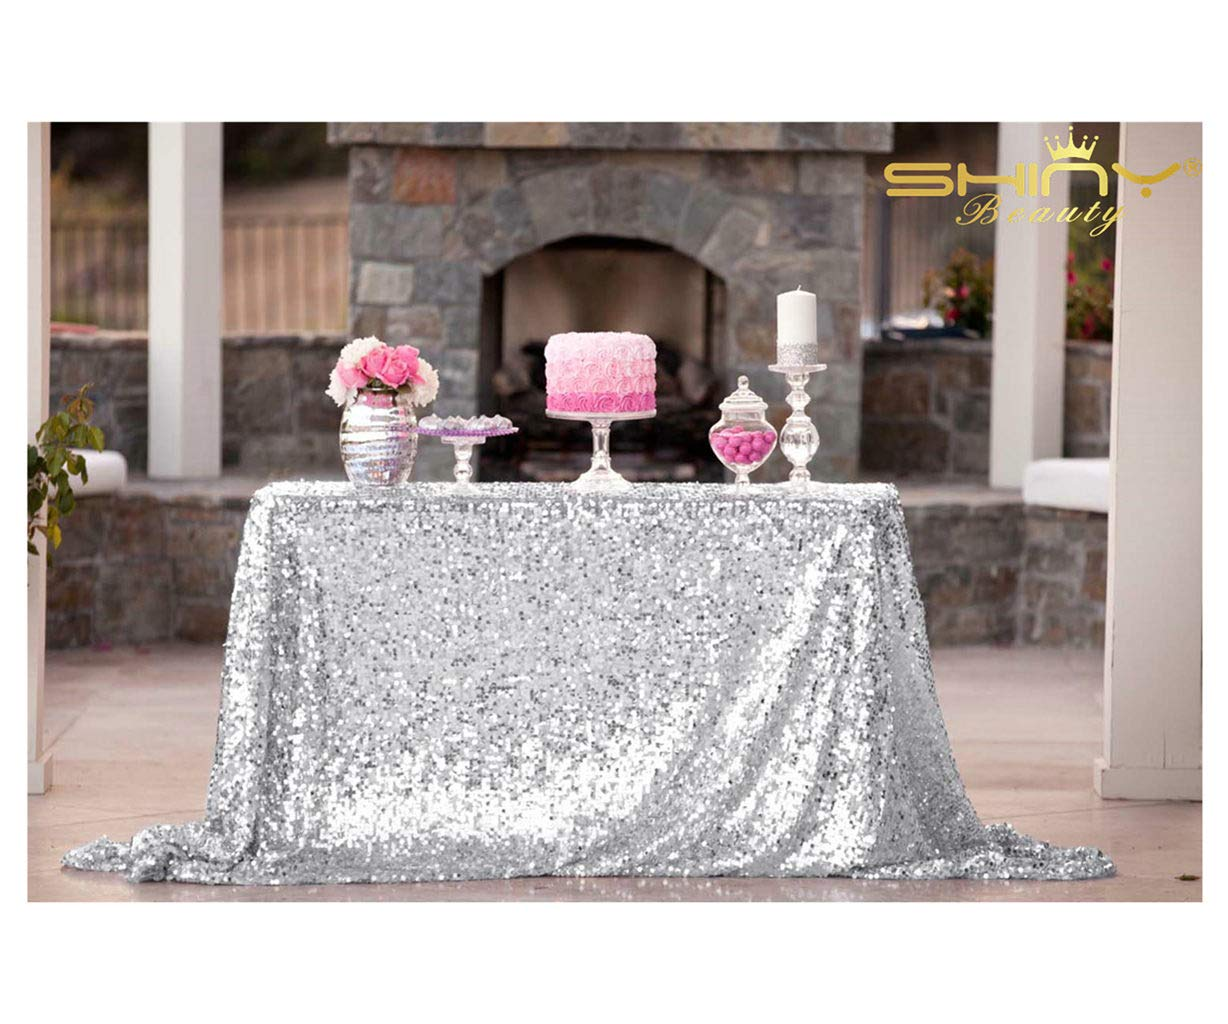 Wedding Table Linens.Shidianyi Sequin Tablecloth Wedding Table Cloth Sparkle Sequin Linens Glitz Sequin Cake Tablecloth Sequin Tablecloth Wedding Bling Event